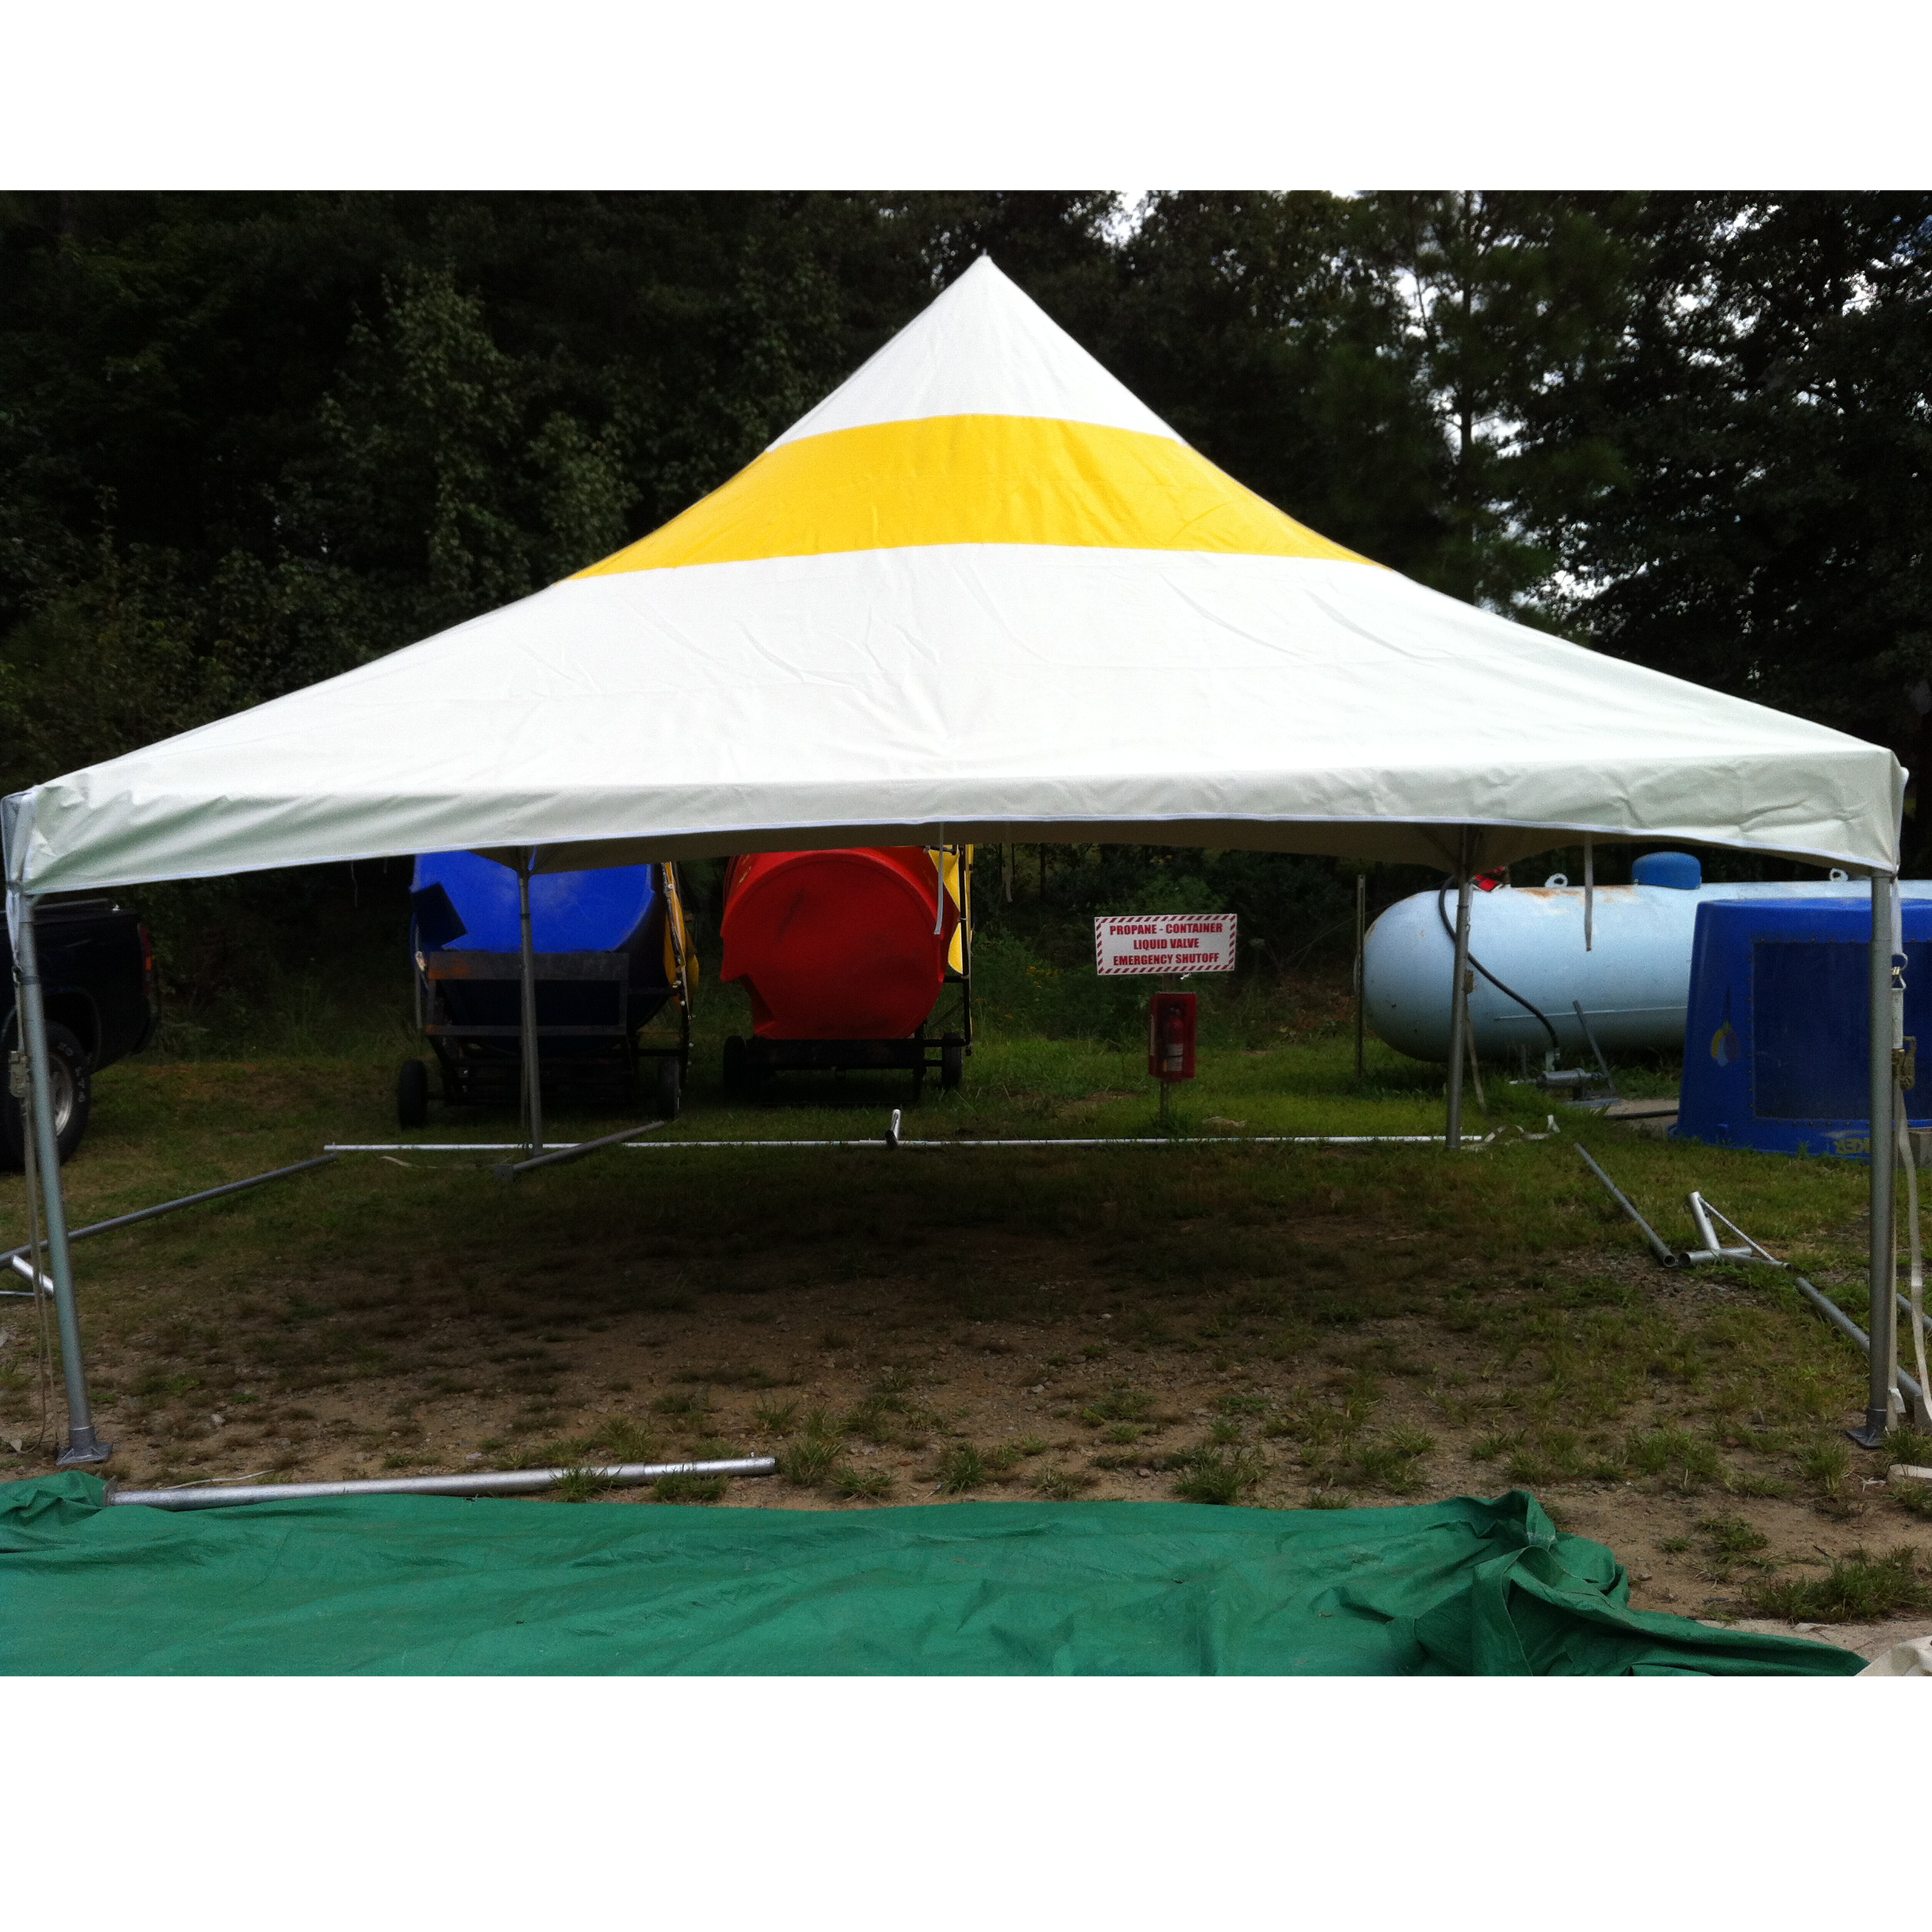 previousPlaynext  sc 1 st  DeeJayu0027s Event Rentals & 15 x 15 High Peak Tent (White and Striped) - DeeJayu0027s Event Rentals